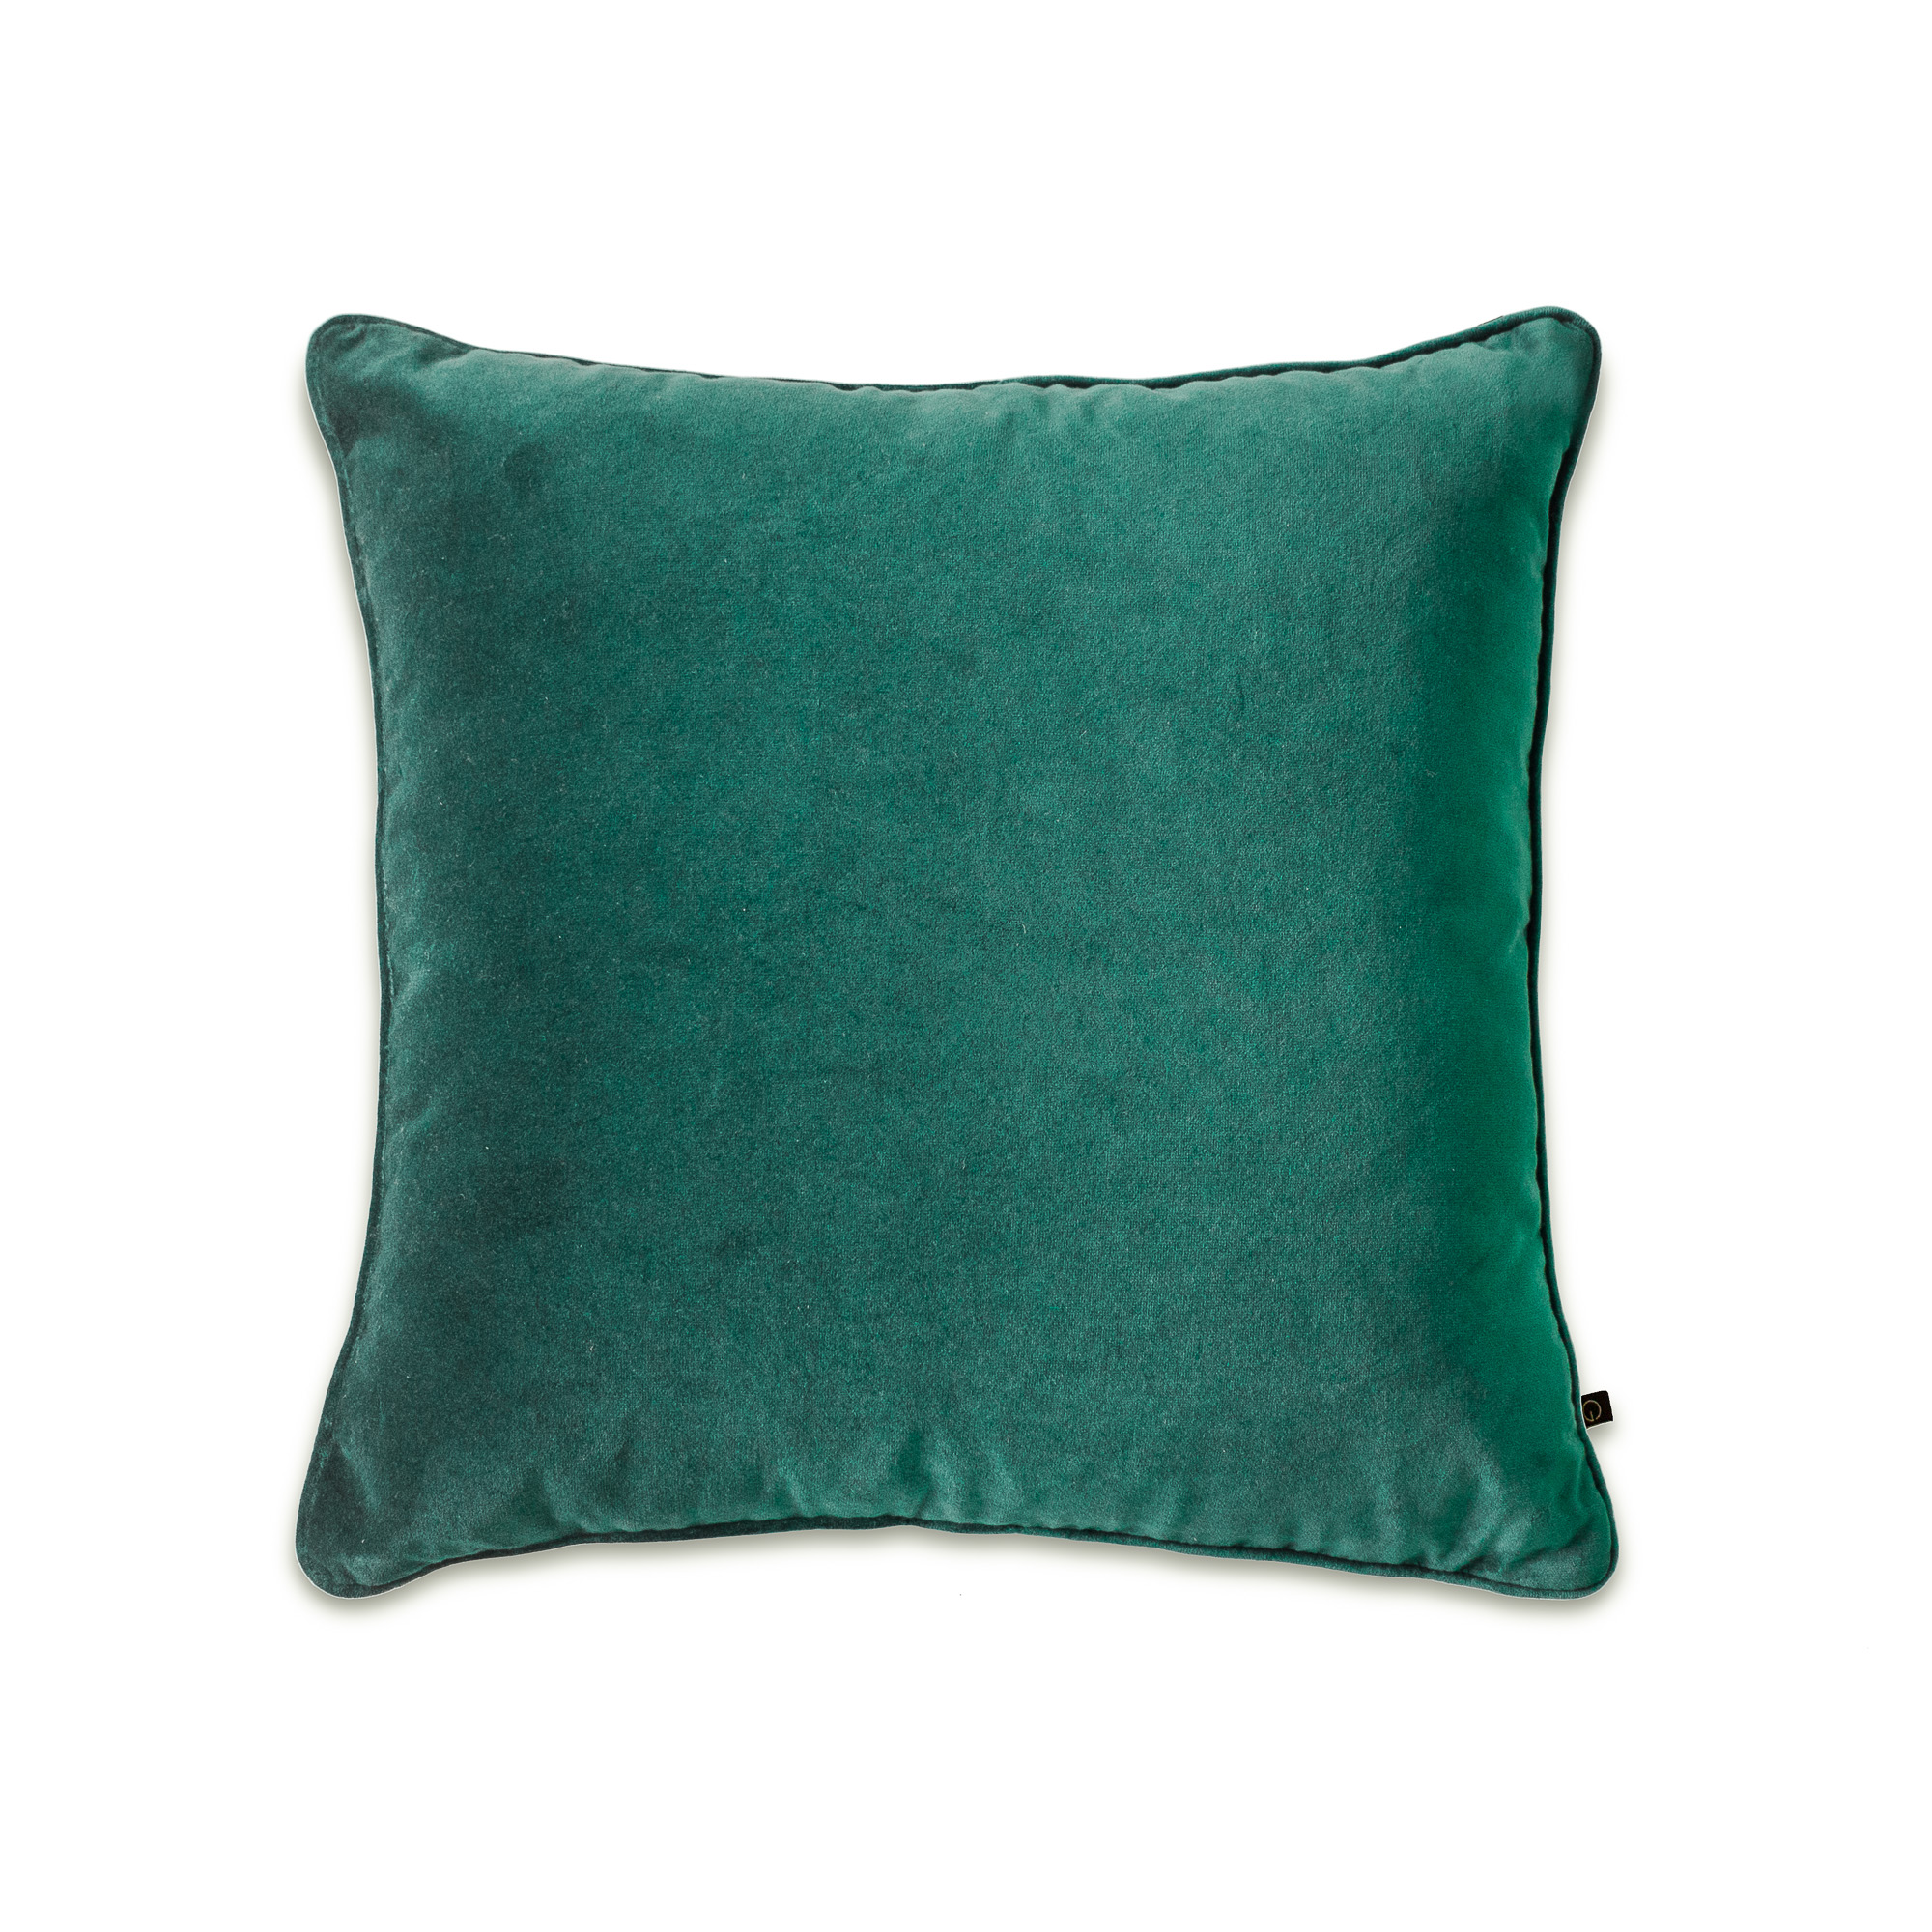 A Green Landscape Cushion Cover